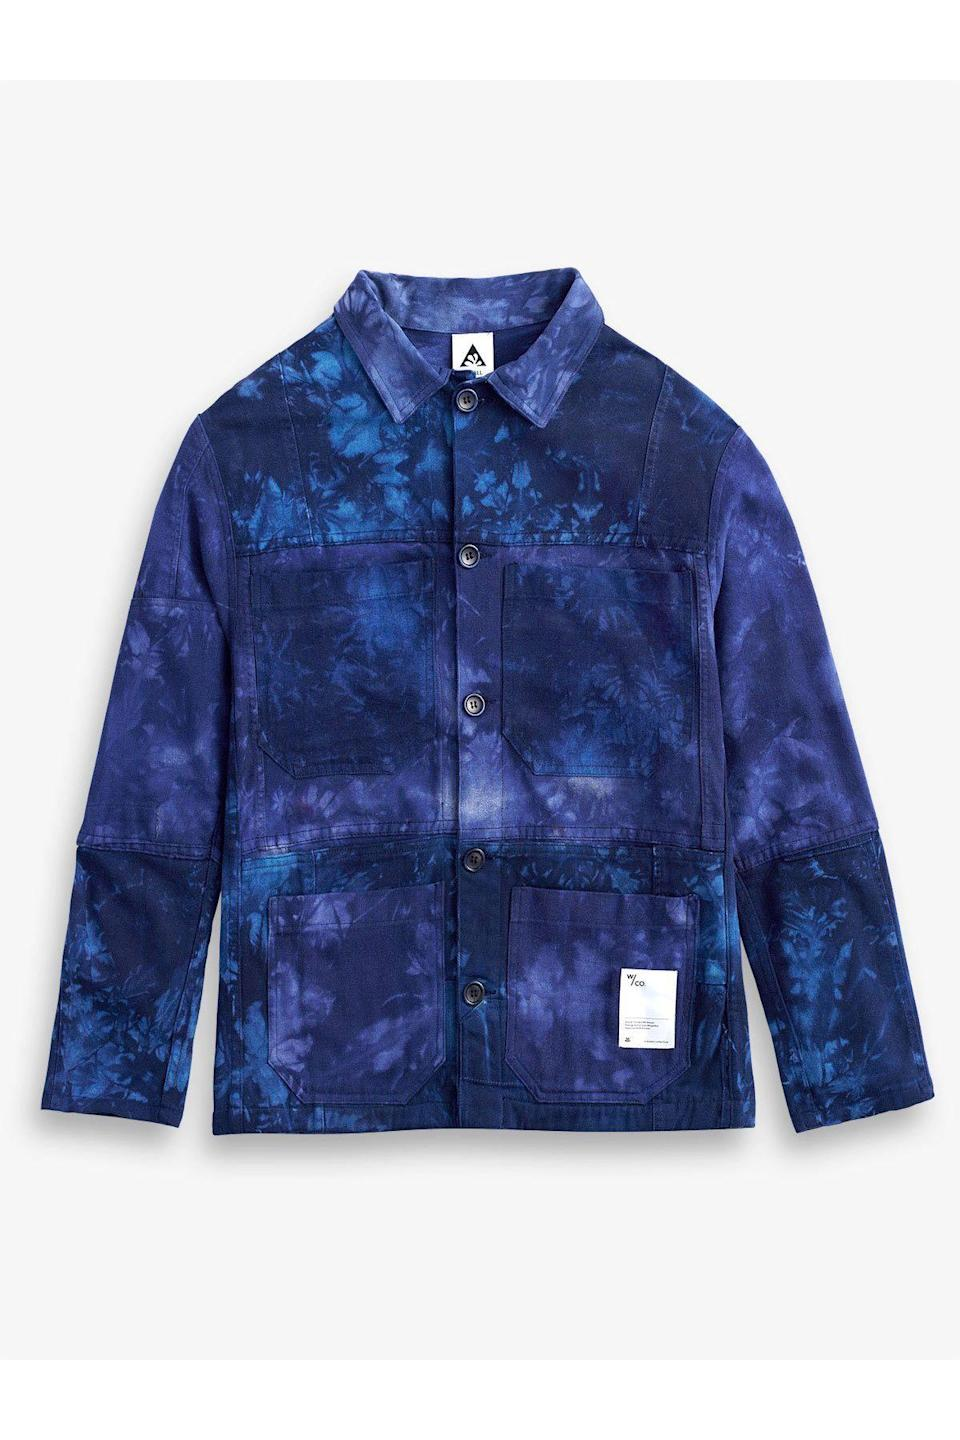 """<p><strong>The Wasted Co</strong></p><p>thewastedco.com</p><p><strong>$300.00</strong></p><p><a href=""""https://thewastedco.com/collections/all/products/recraft-chore-jacket-indigo-shibori"""" rel=""""nofollow noopener"""" target=""""_blank"""" data-ylk=""""slk:Shop Now"""" class=""""link rapid-noclick-resp"""">Shop Now</a></p><p>Sustainability is a part of each stage of creation at the Wasted Co, including eco-friendly production and fabrics. Most notable is the brand's use of Japanese Washi, a fabric created from tree bark fibers using craft techniques dating back 1,400 years. </p>"""